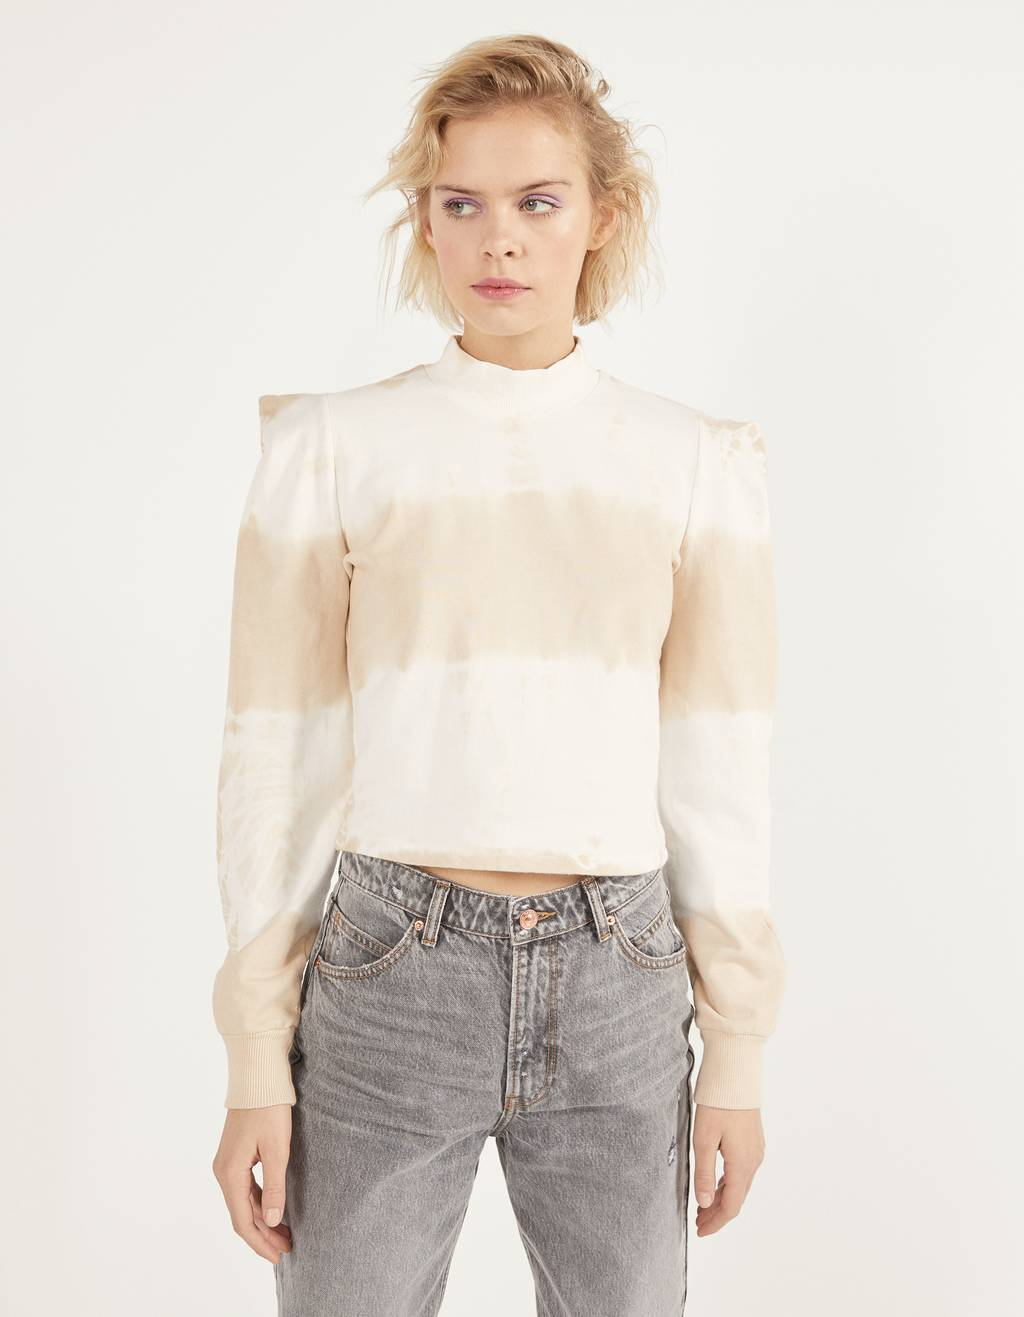 Shoulder pad-effect sweatshirt